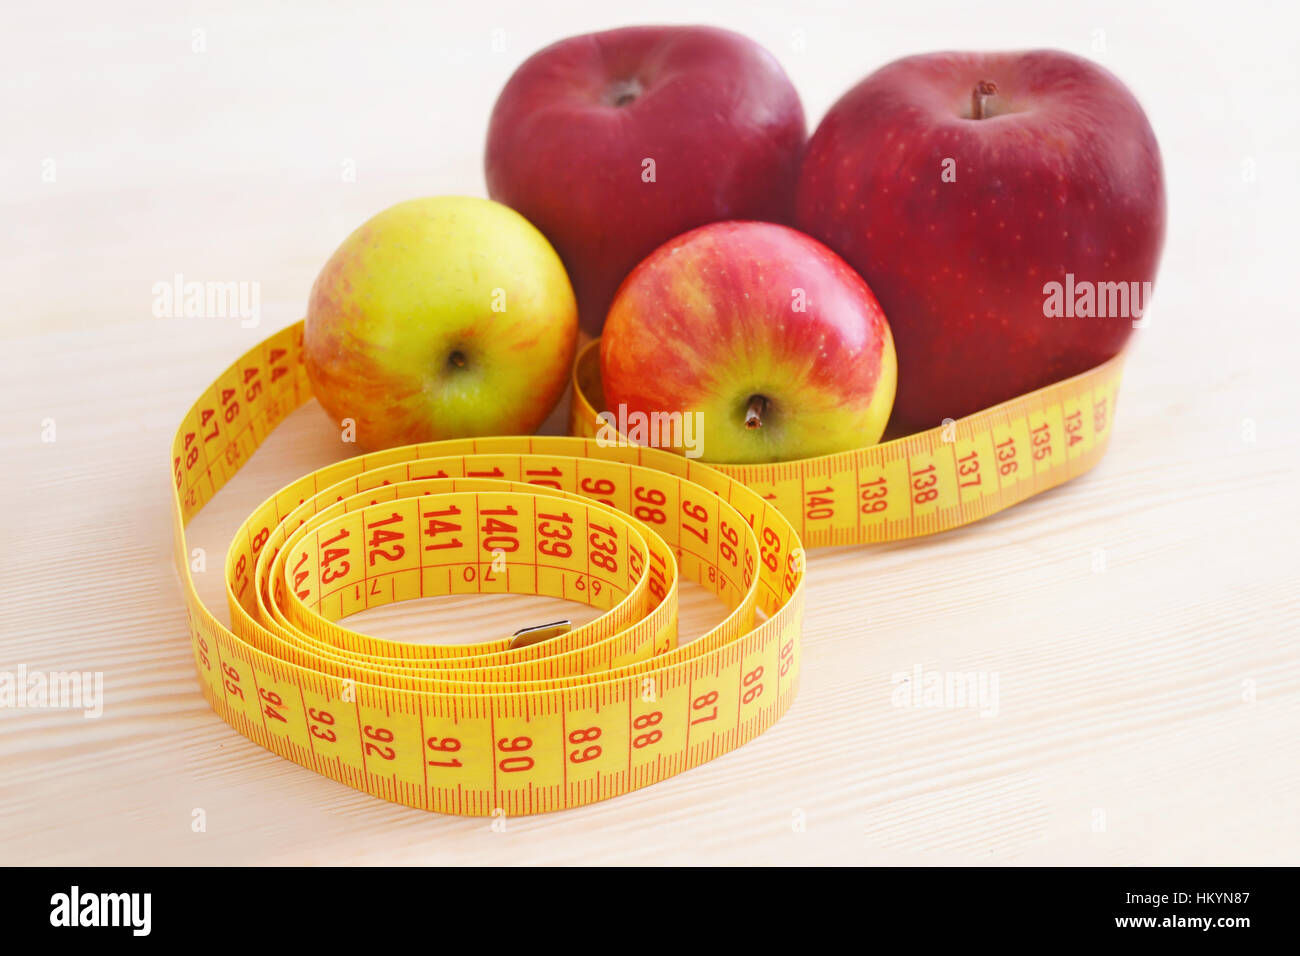 fresh apples with tape measure - weight loss - diet concept - Stock Image